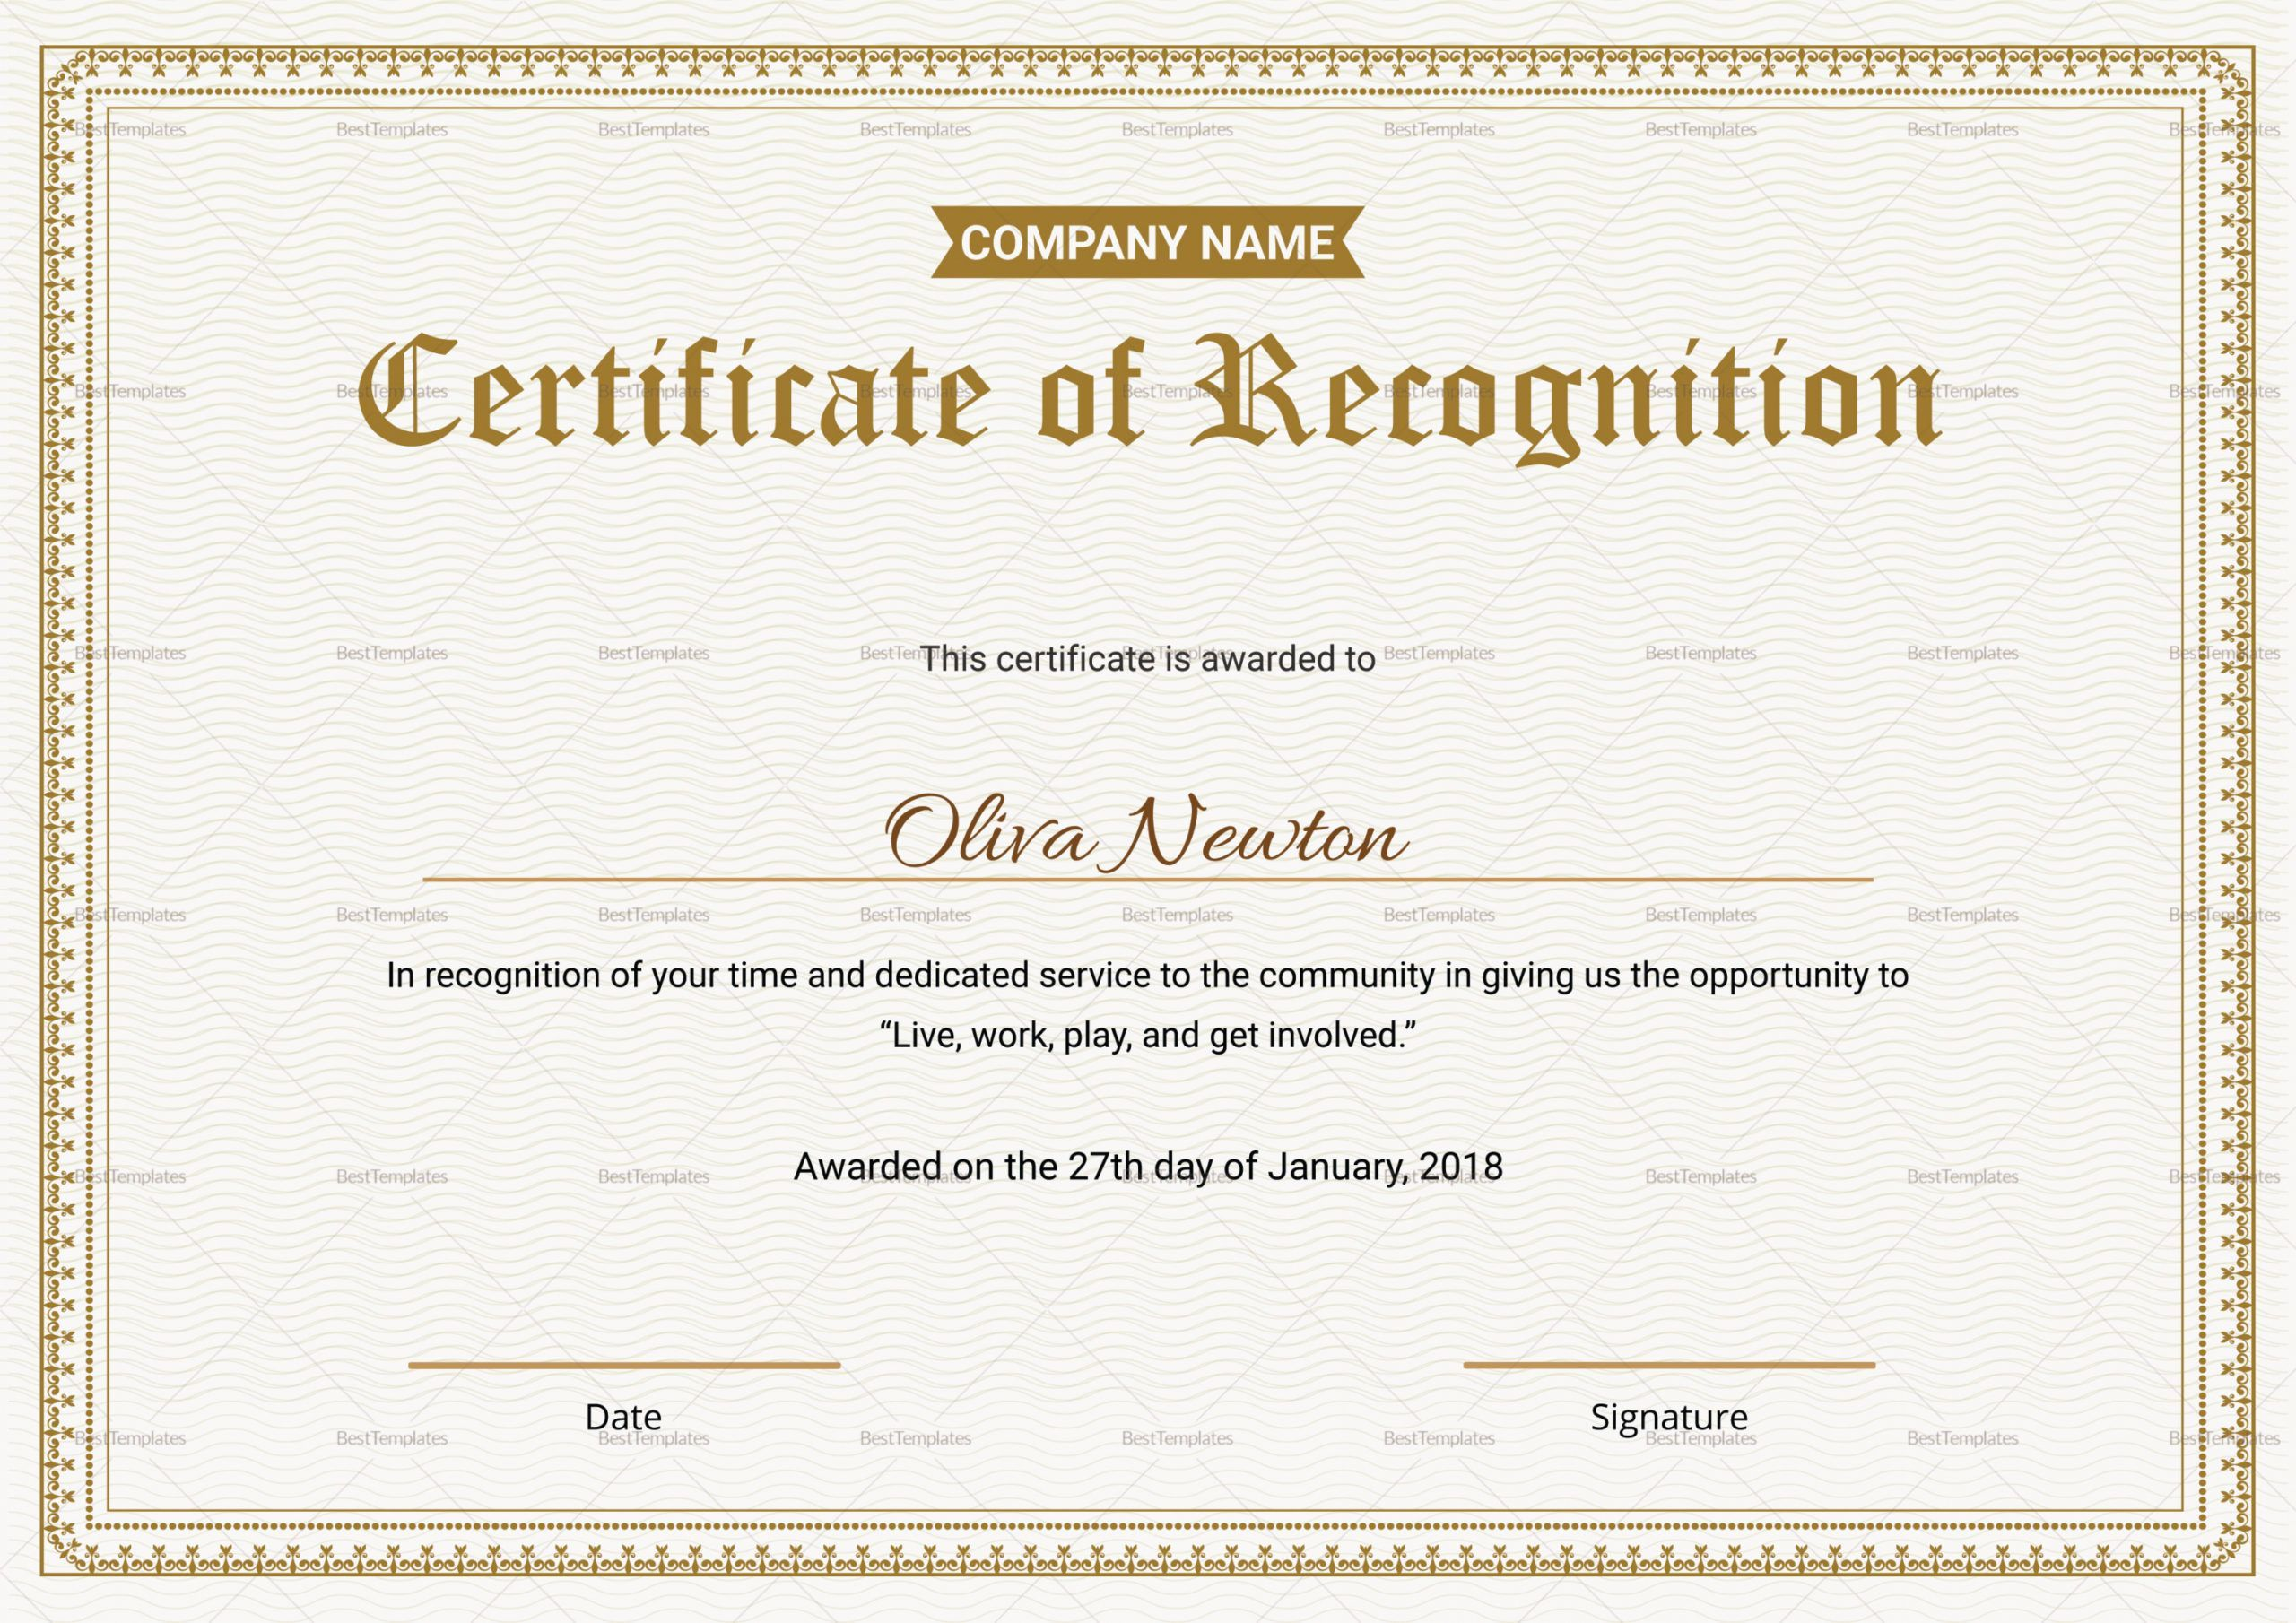 Get Our Free Employee Recognition Certificate Template Certificate Of Recognition Template Certificate Templates Word Template